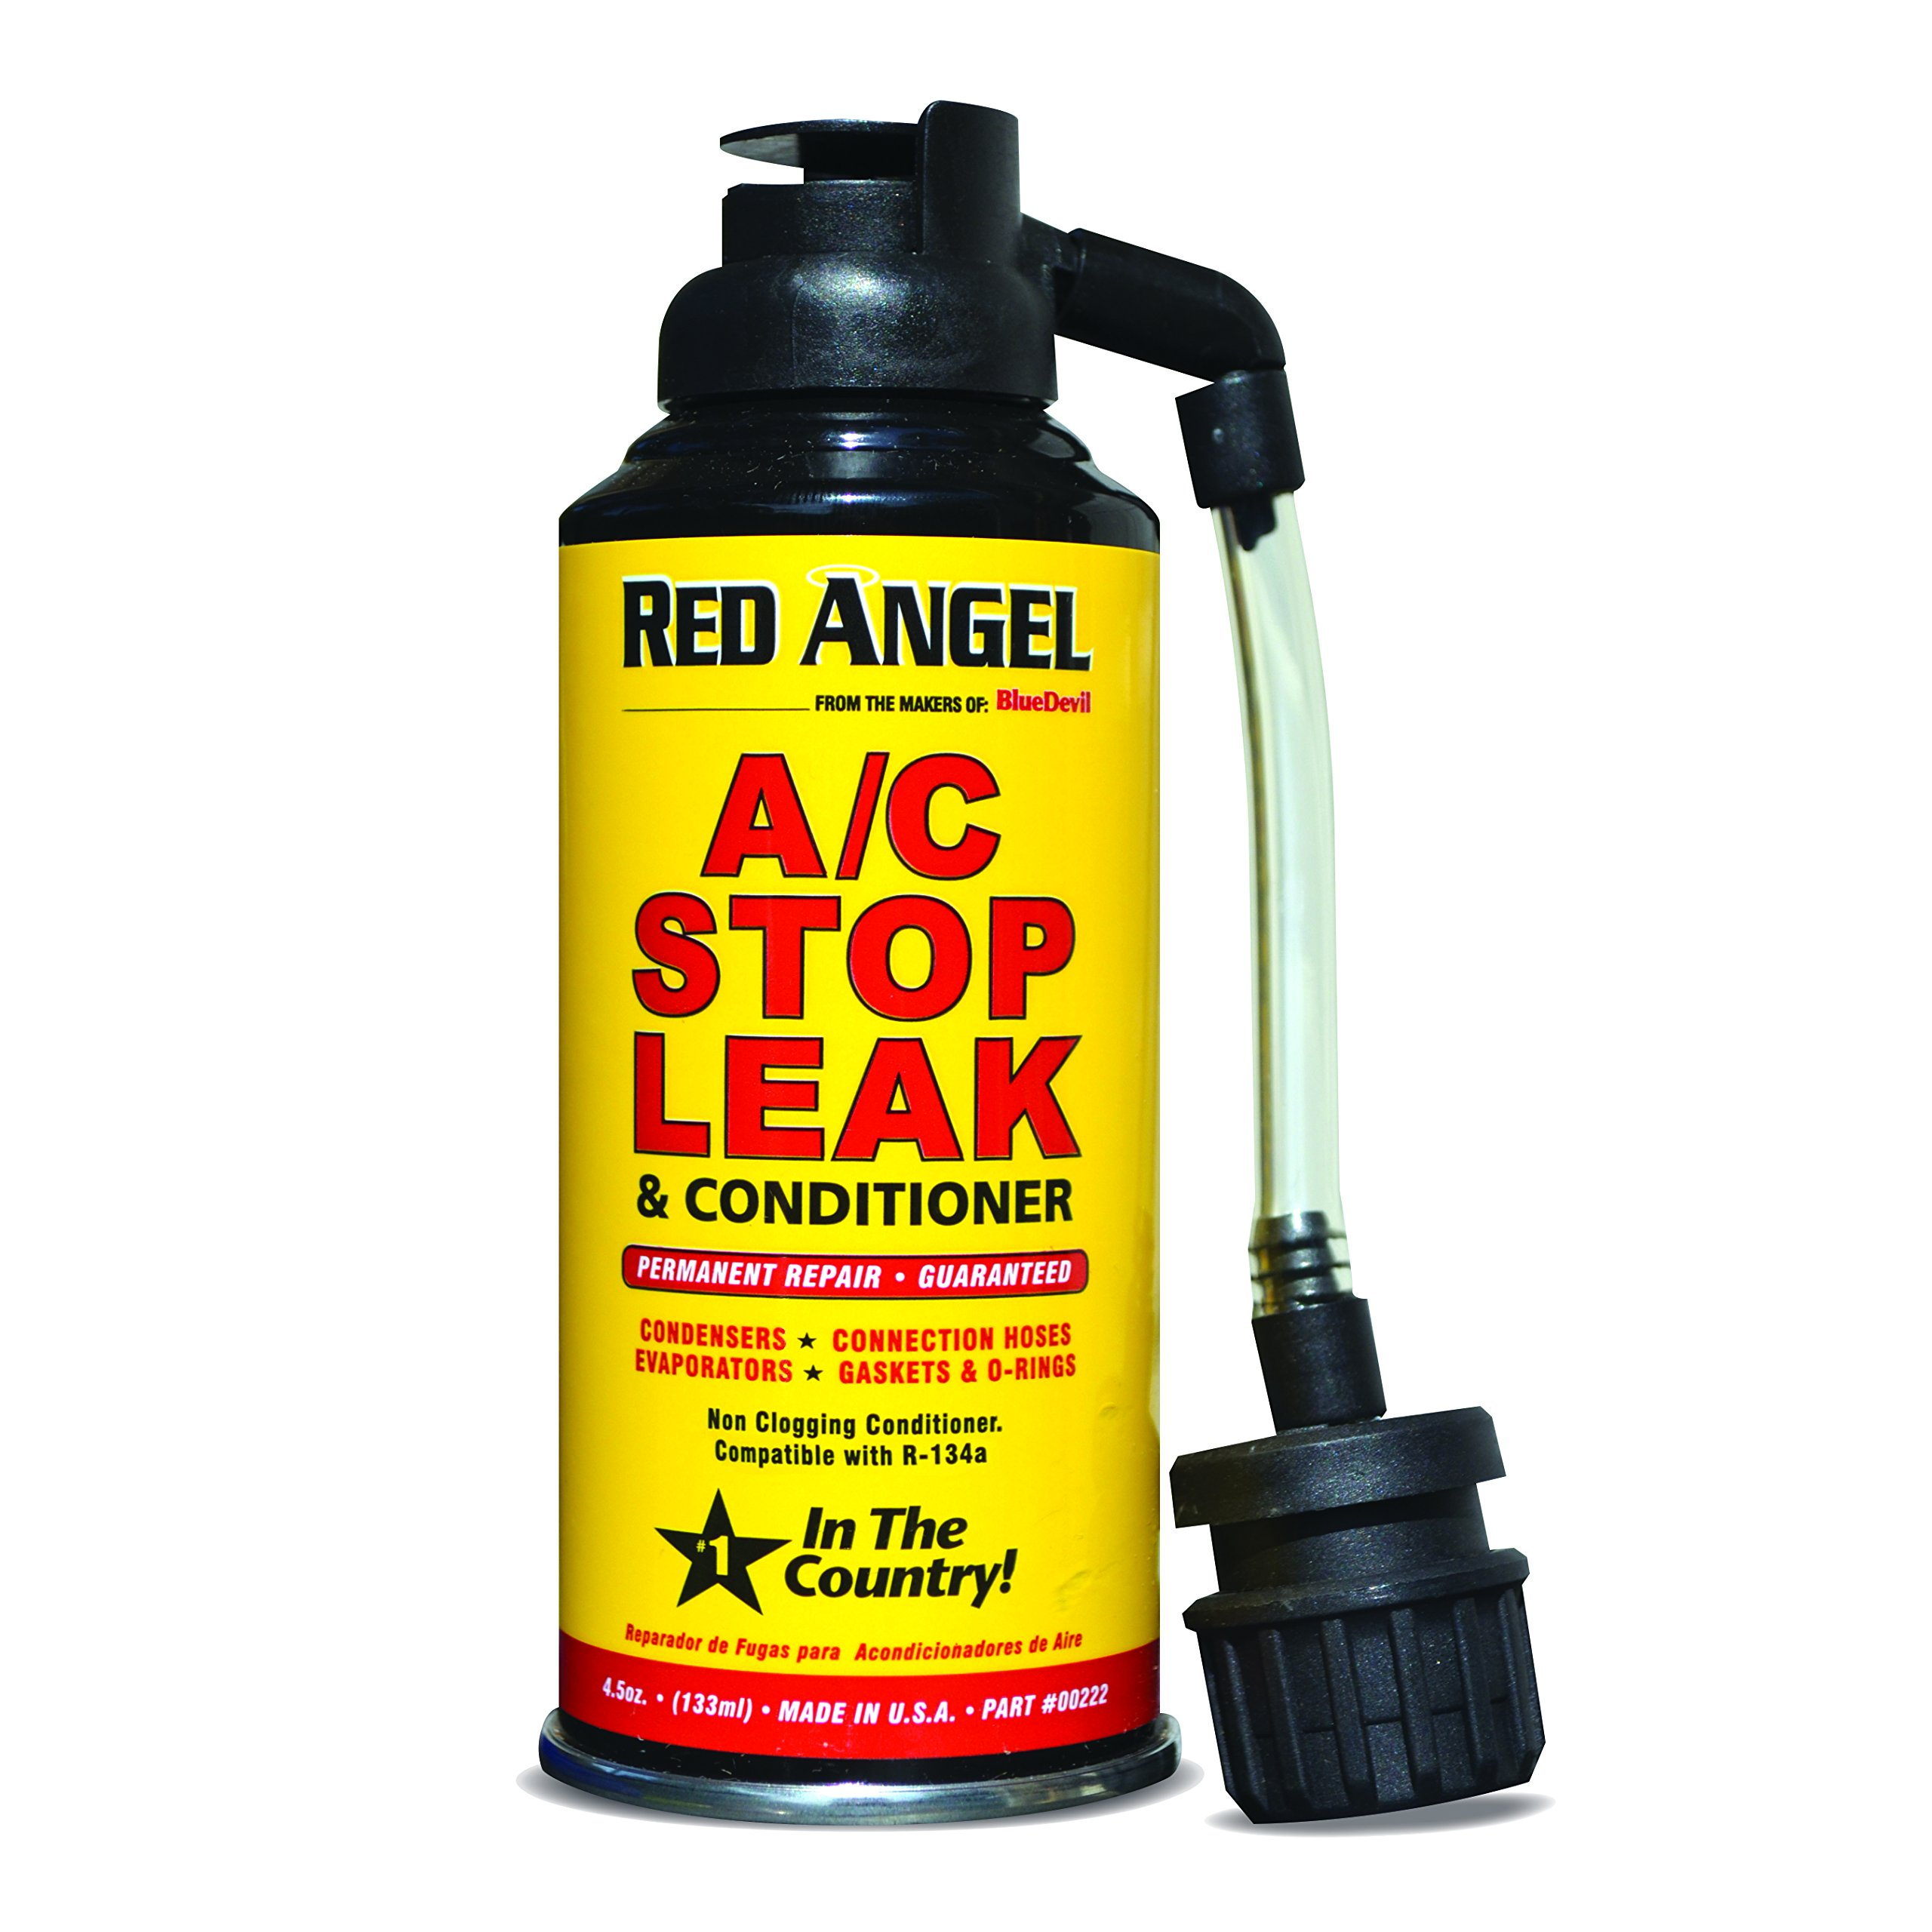 Red Angel A/C Stop Leak & Conditioner by BlueDevil Products